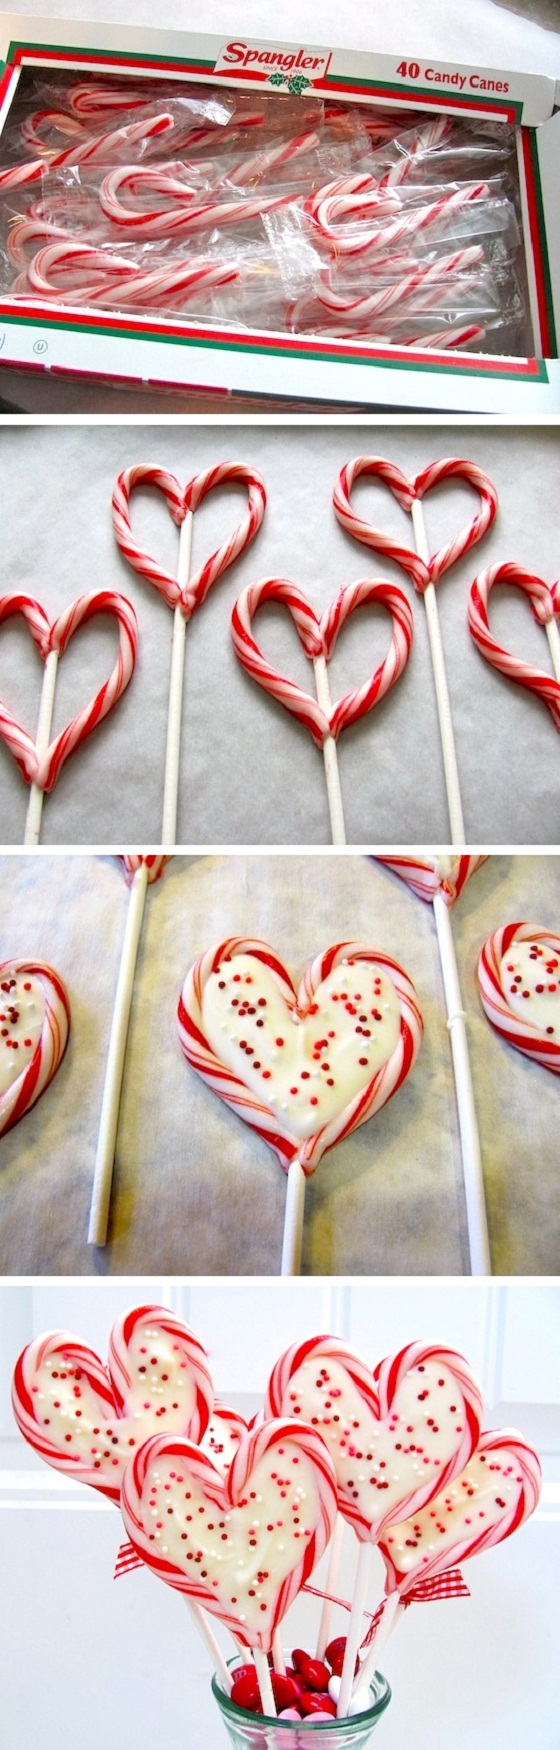 Sweetheart heart chocolate peppermint pops